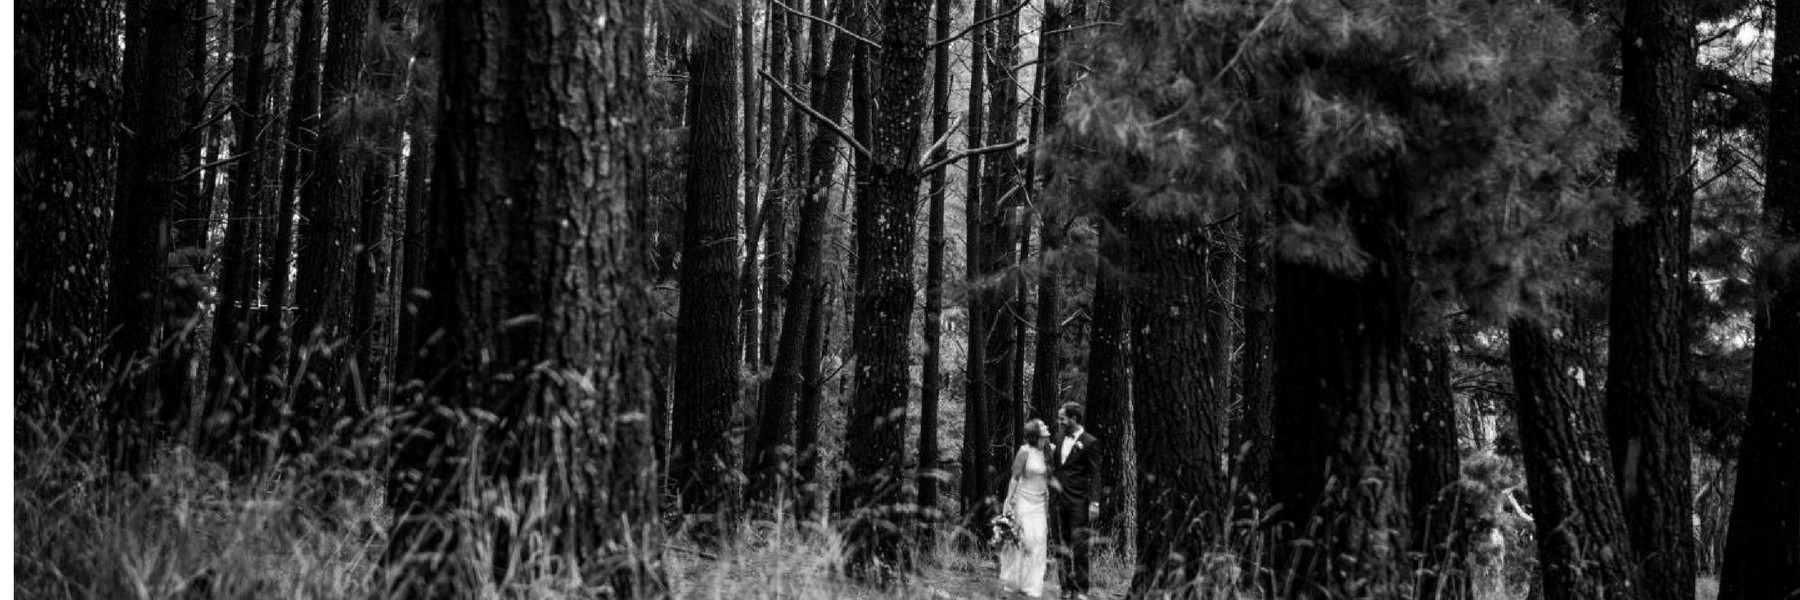 Woodhouse Weddings Pine Forrest